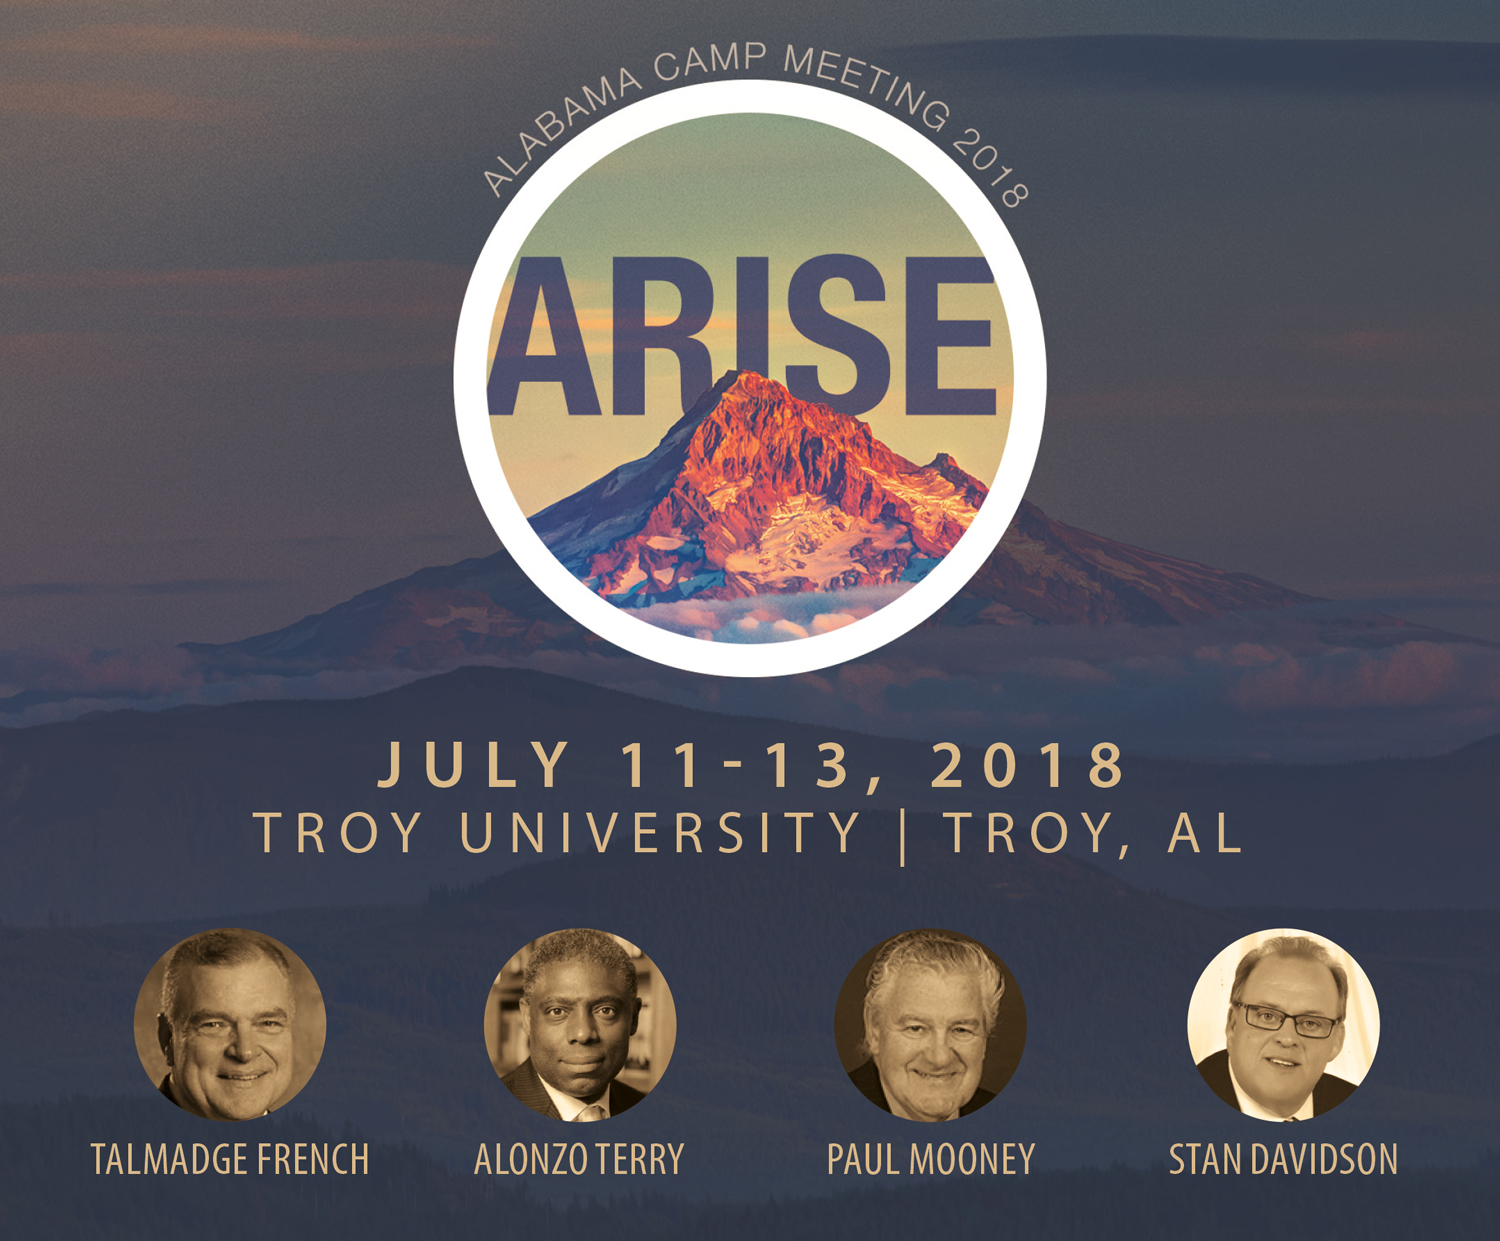 Alabama UPCI Camp Meeting 2018